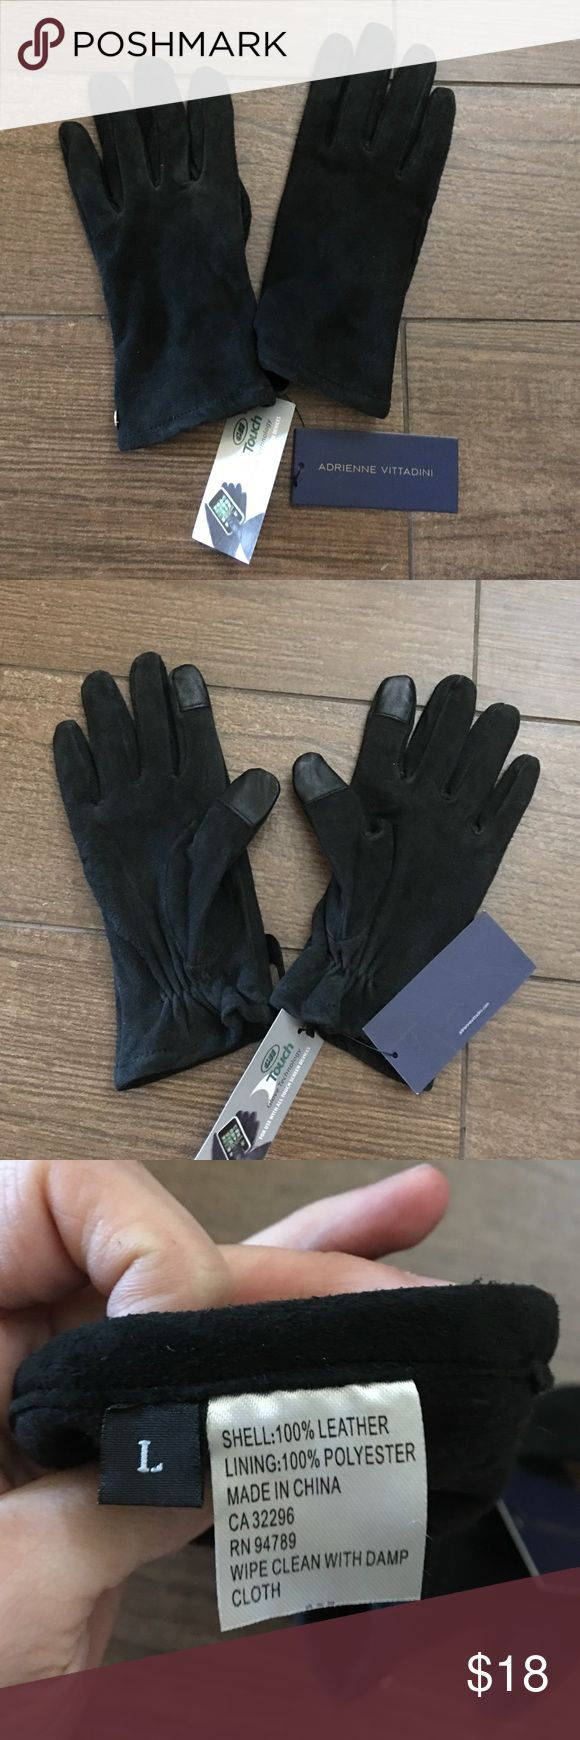 SALE🎉Adrienne Vittadini 100% leather suede tech NWT Adrienne Vittadini 100% leather suede tech gloves. Has the tech use on index fingers and thumbs. Size large color black Adrienne Vittadini Accessories Gloves & Mittens